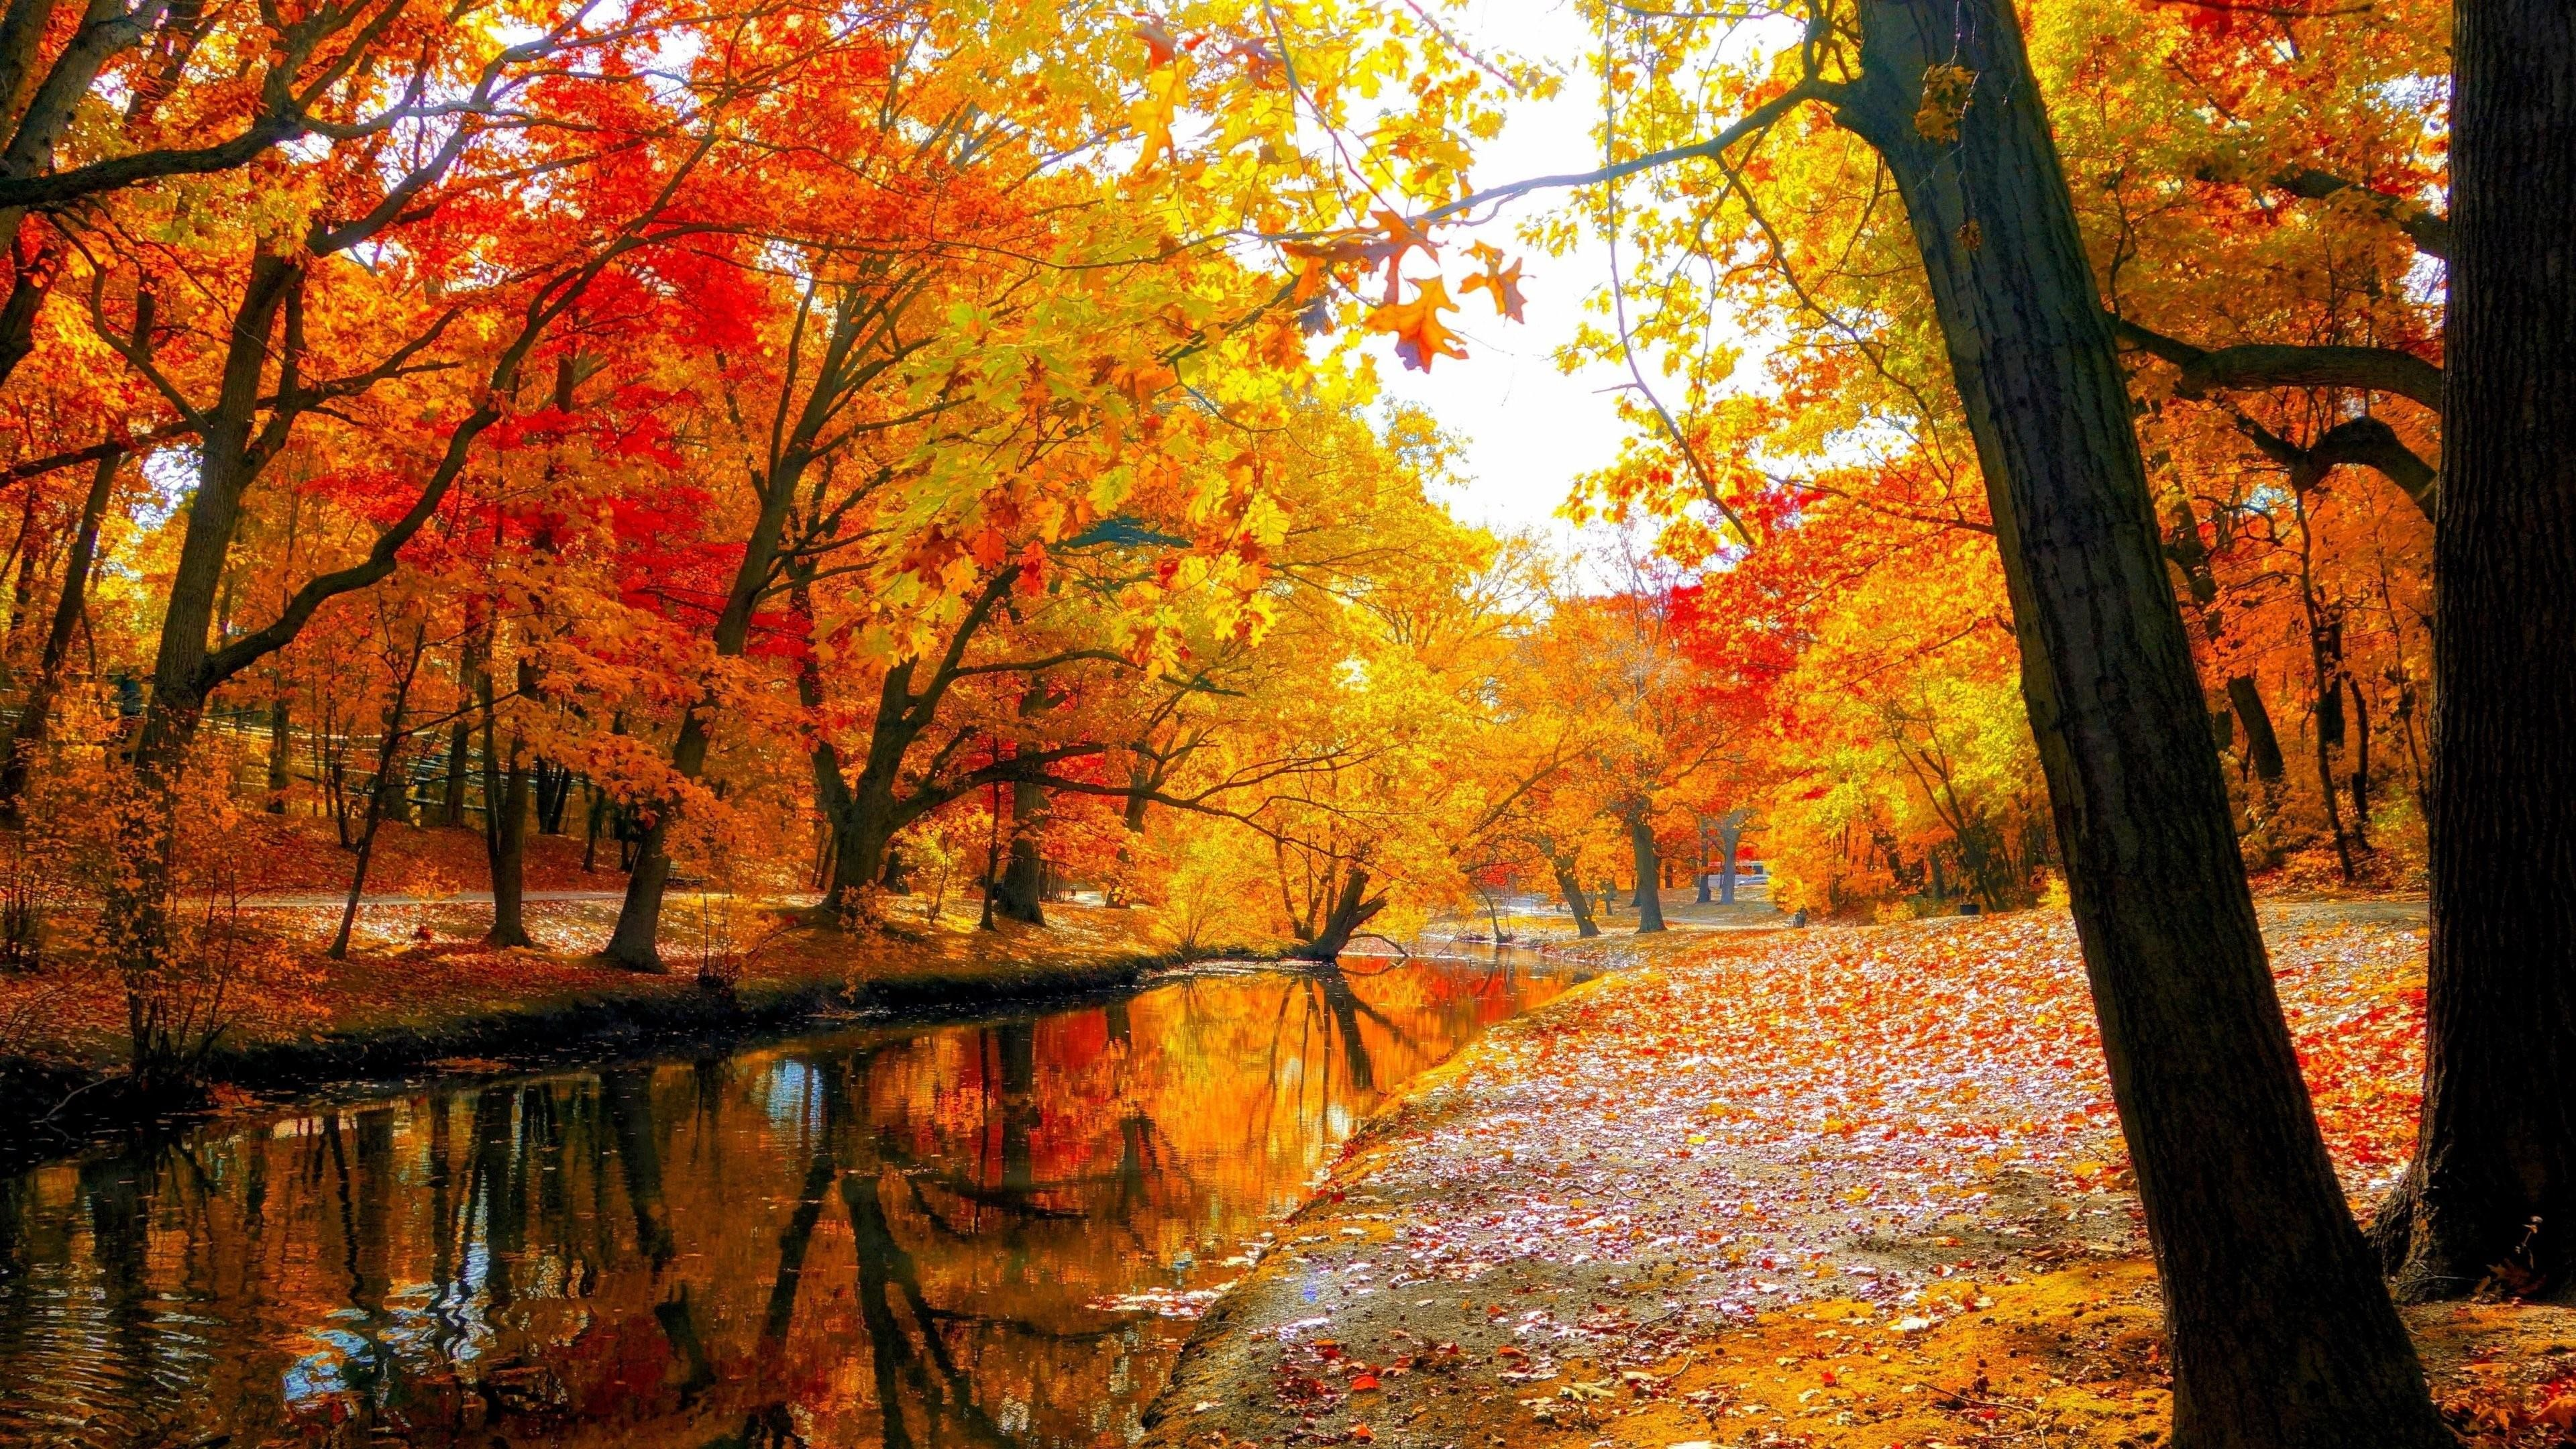 Autumn Fall Landscape Nature Tree Forest Leaf Lake Park 4k Wallpaper Hdwallpaper Desktop In 2020 Autumn Landscape Autumn Leaves Wallpaper Fall Wallpaper